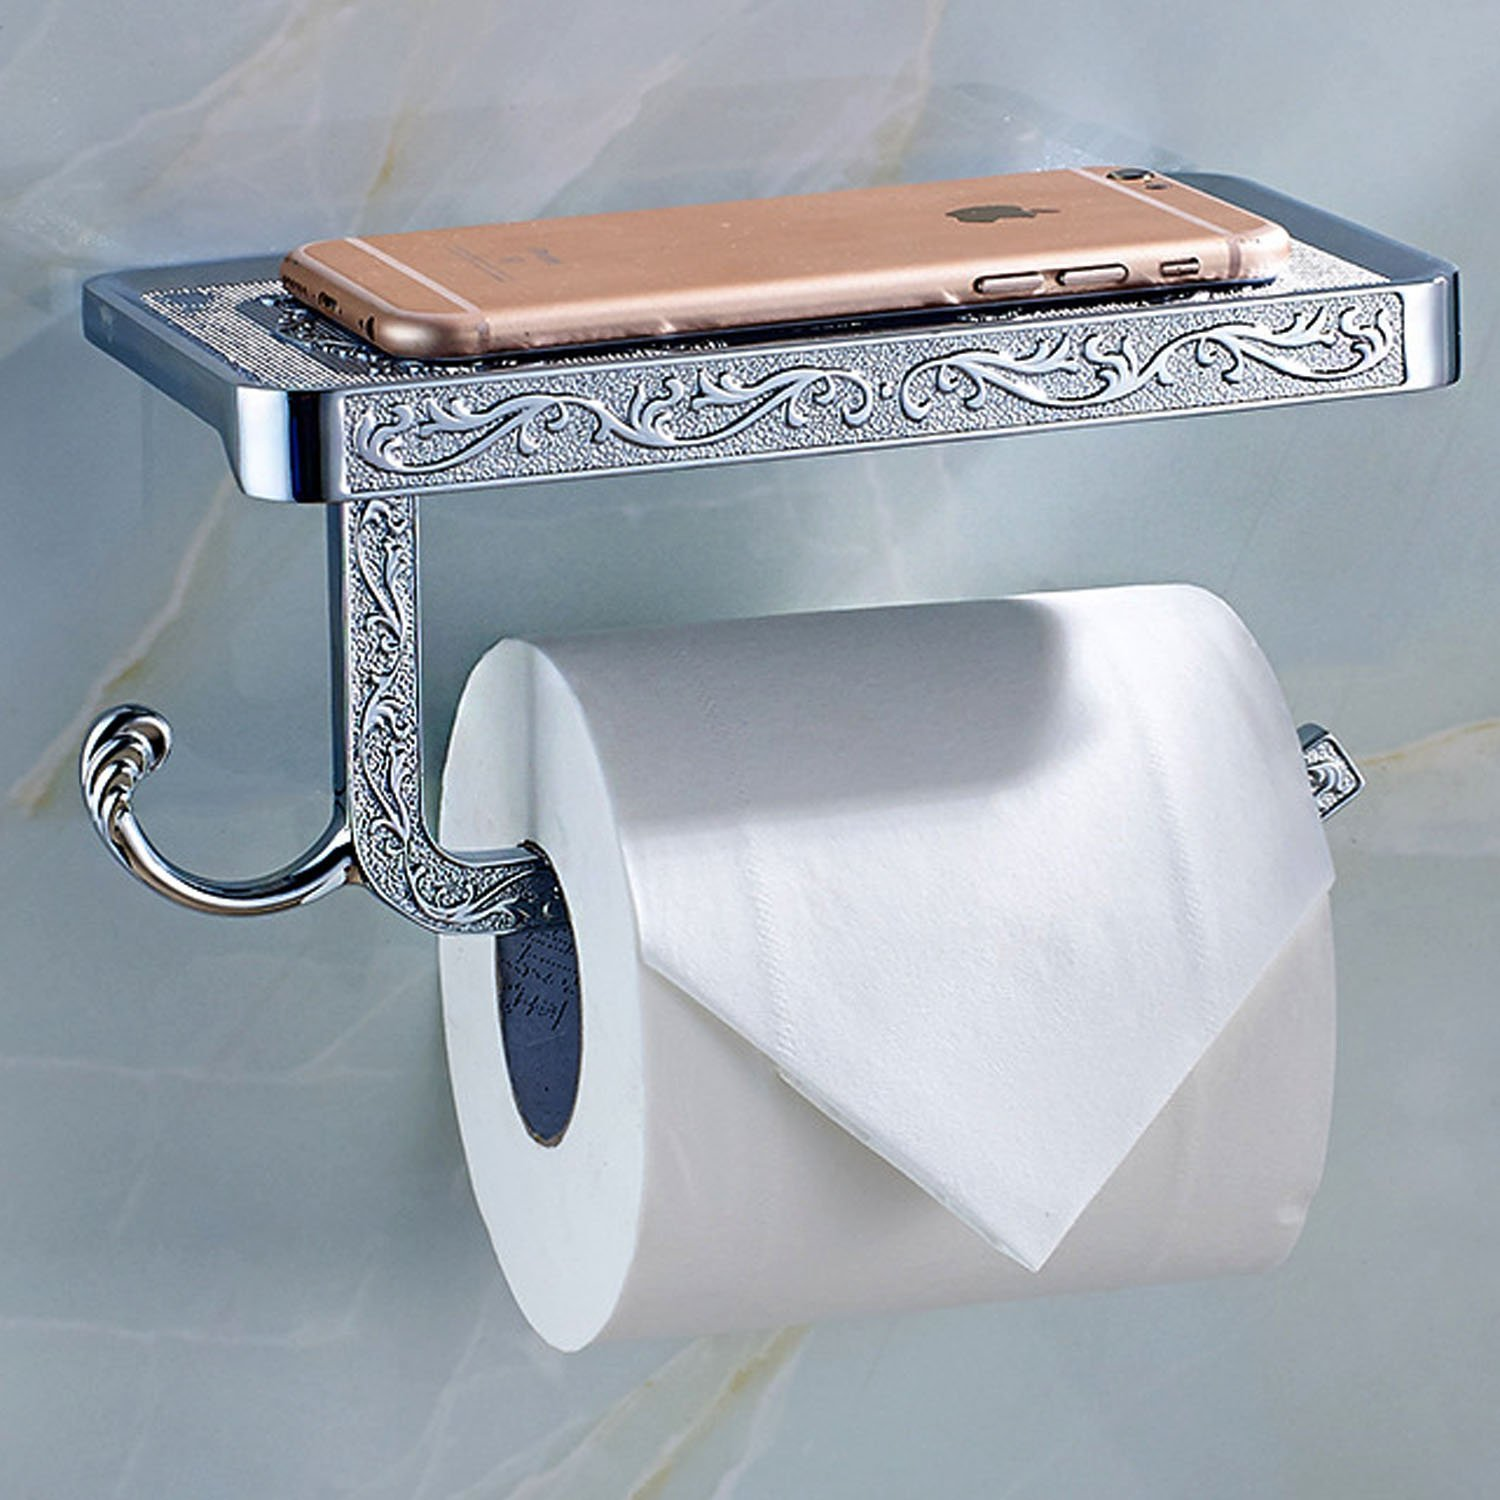 Amazon.com: ThinkTop Antique Carving Toilet Roll Paper Holder with ...